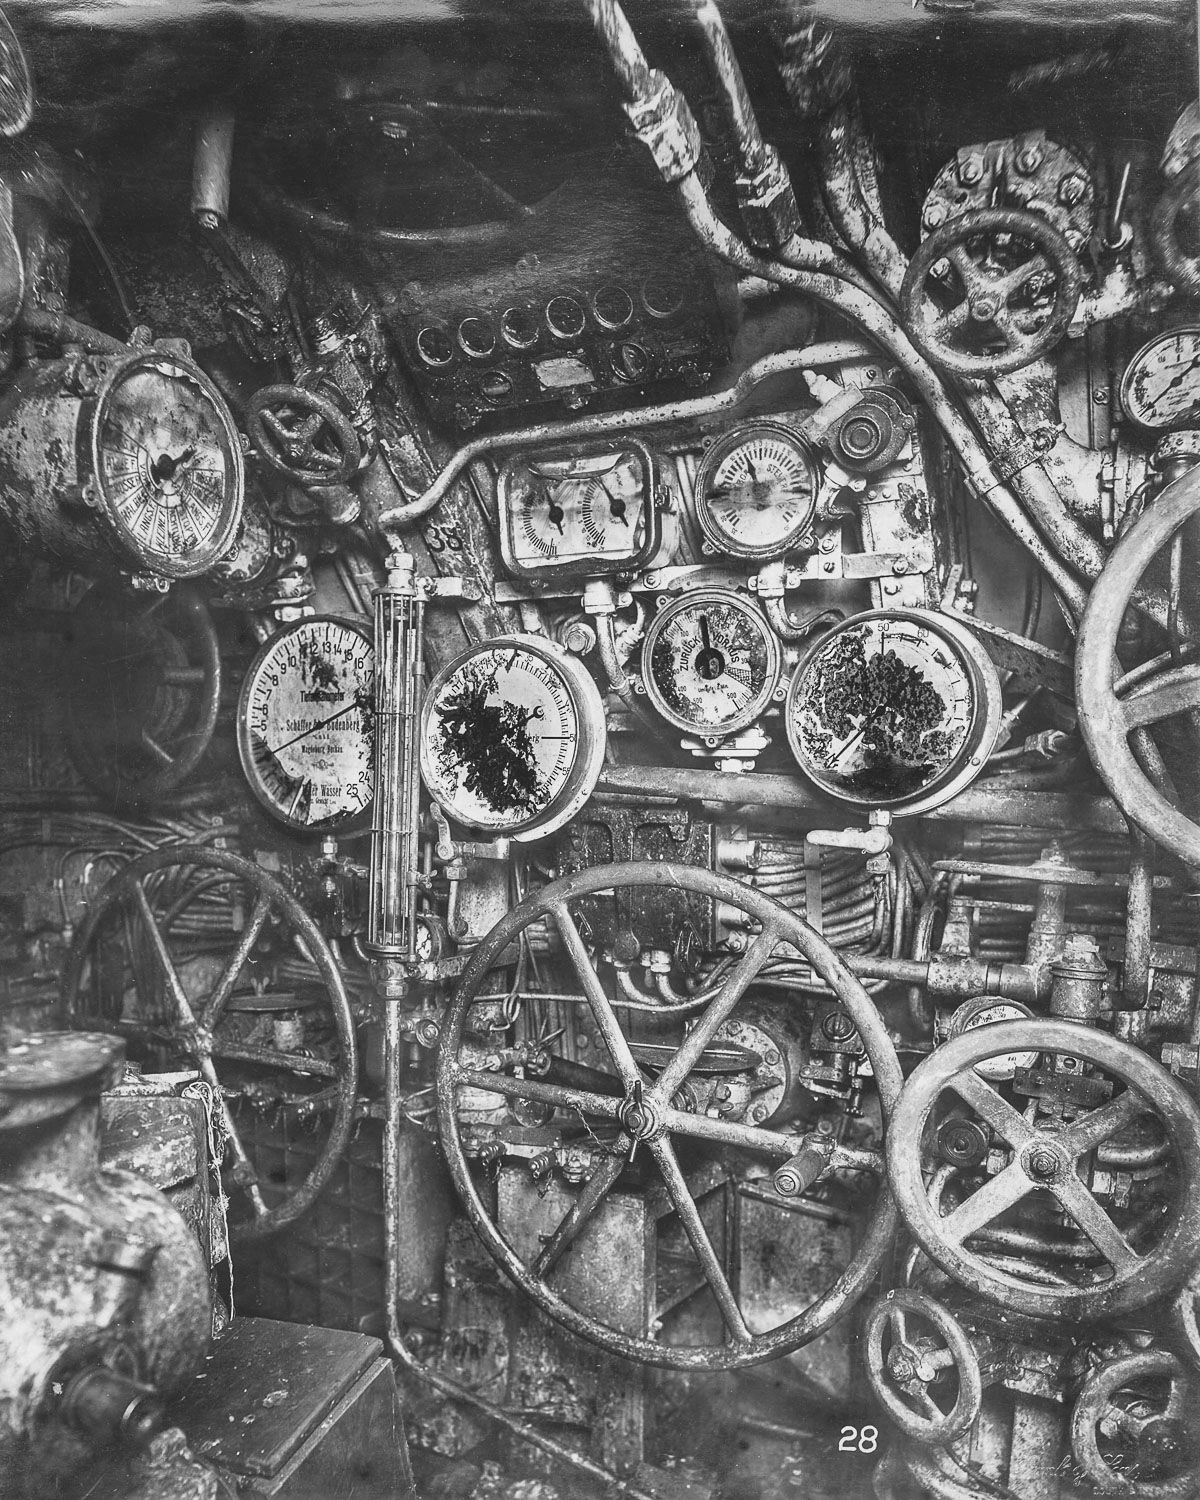 medium resolution of control room looking forward the depth gauge engine telegraphs wheels for flooding and blowing and hydroplane controls are visible